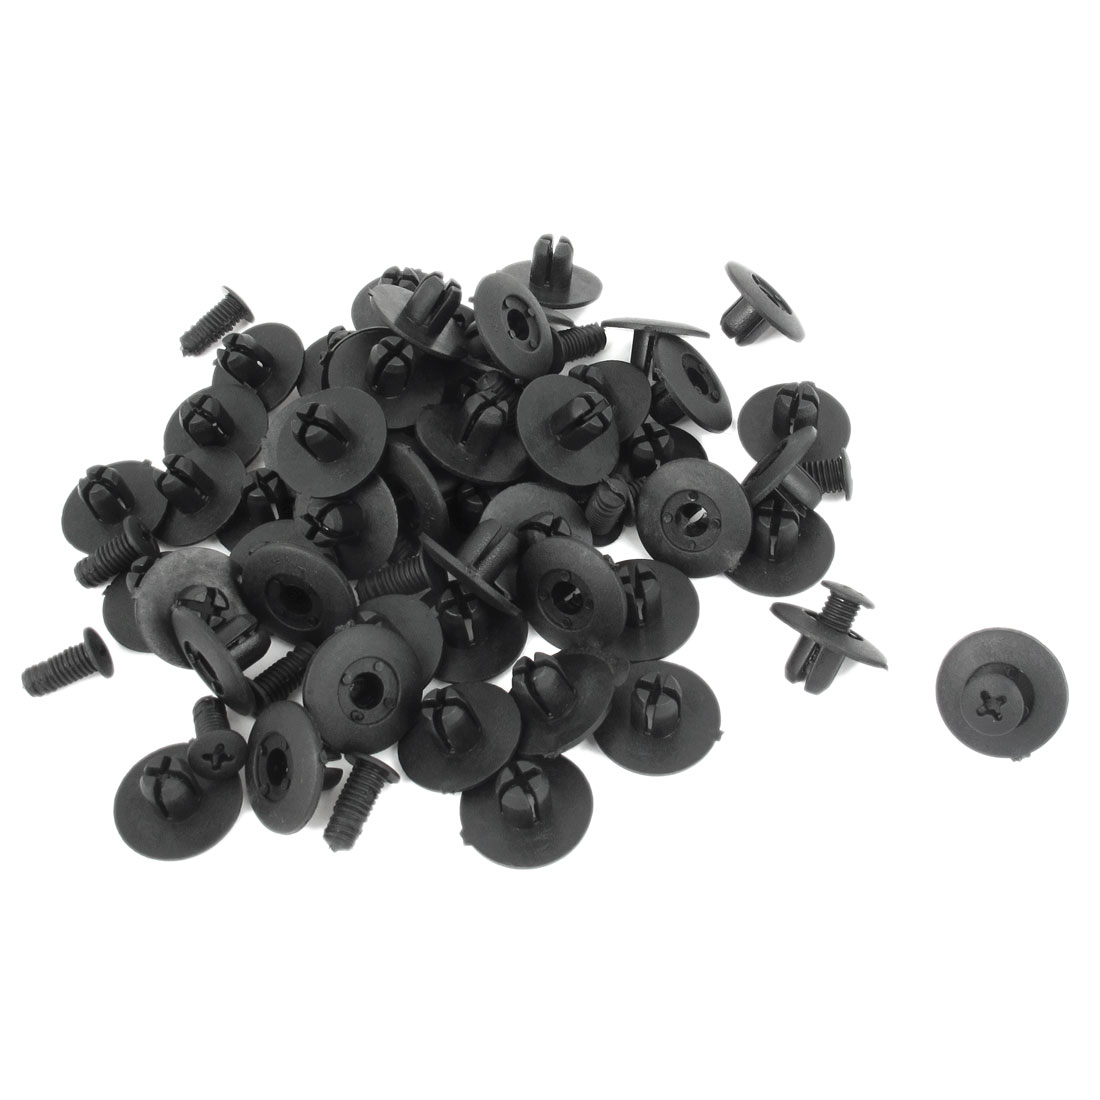 100 Pcs Black Plastic Rivet Car Door Trim Panel Retainer Clip 8mm Hole for Honda